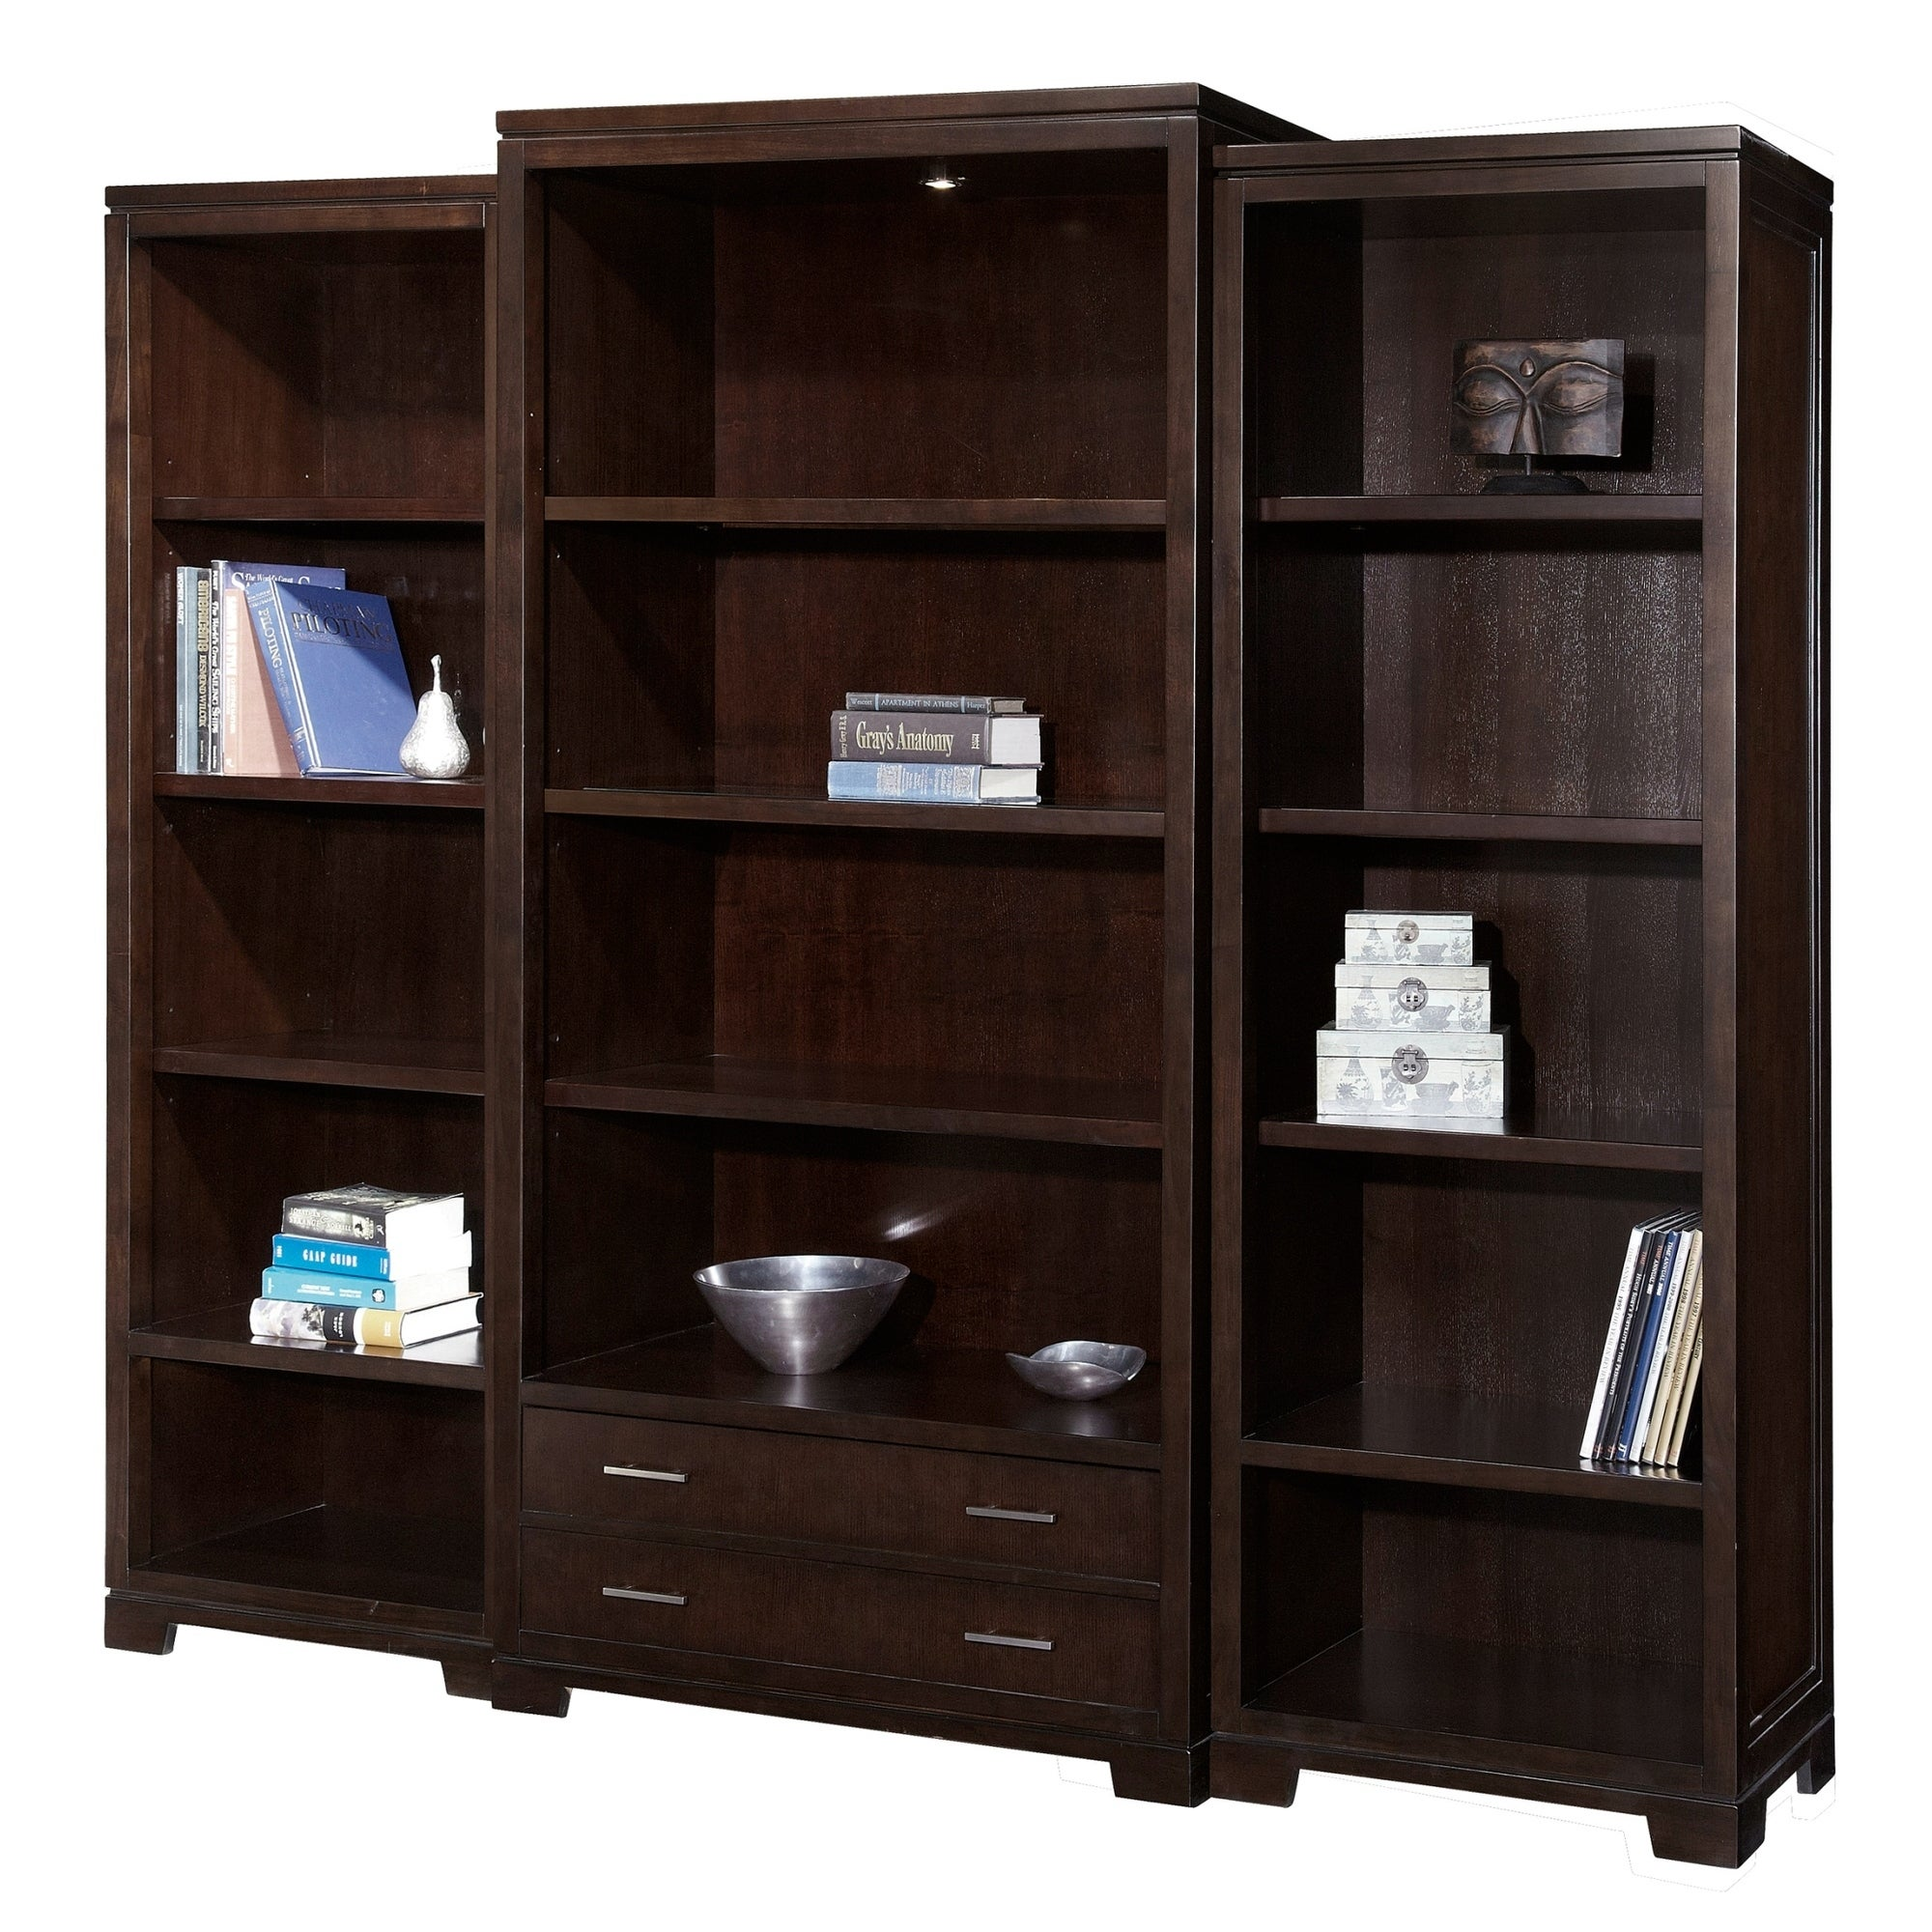 Shop Mocha Ash Veneer Wood Glass Storage Media Bookshelf With Drawer